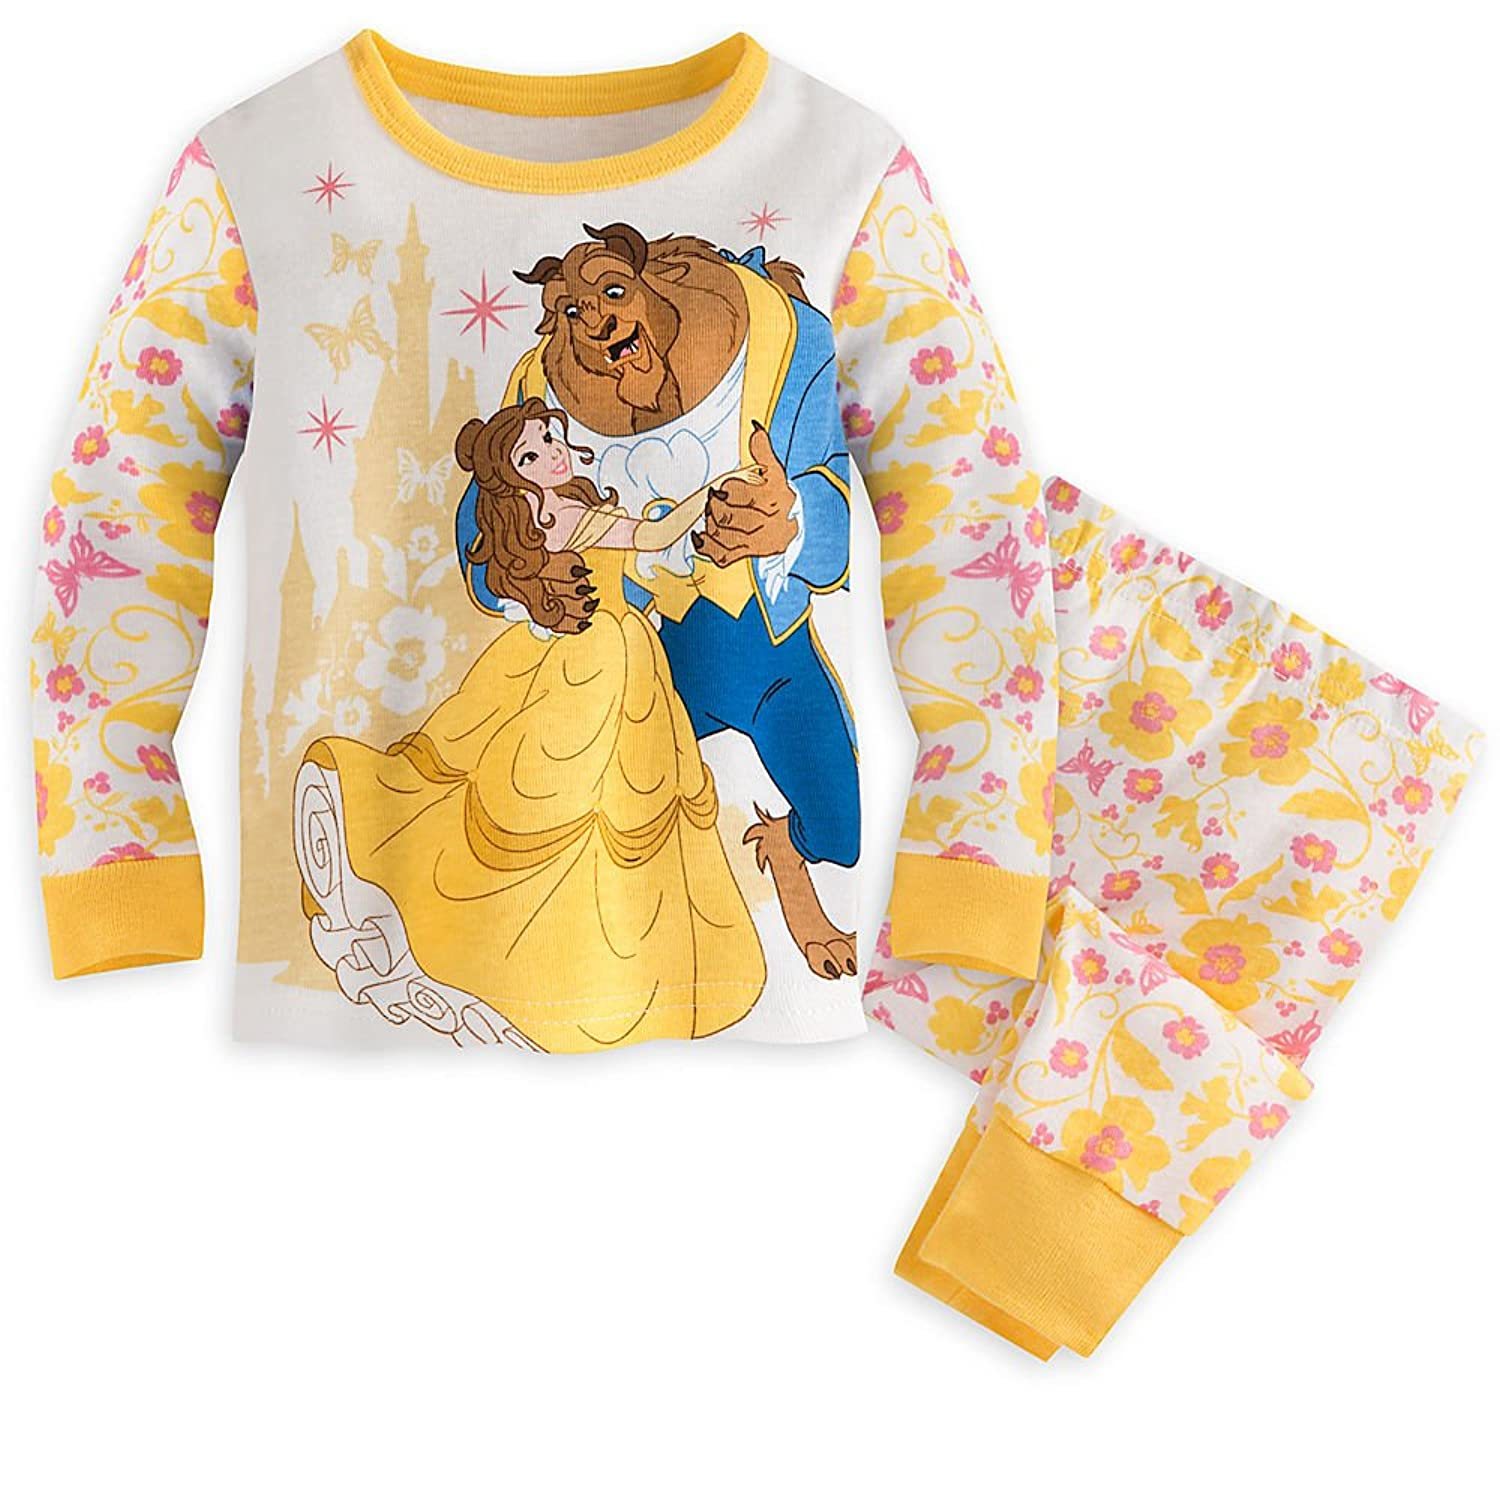 Amazon Disney Belle and Beast PJ PALS Pajamas for Baby White